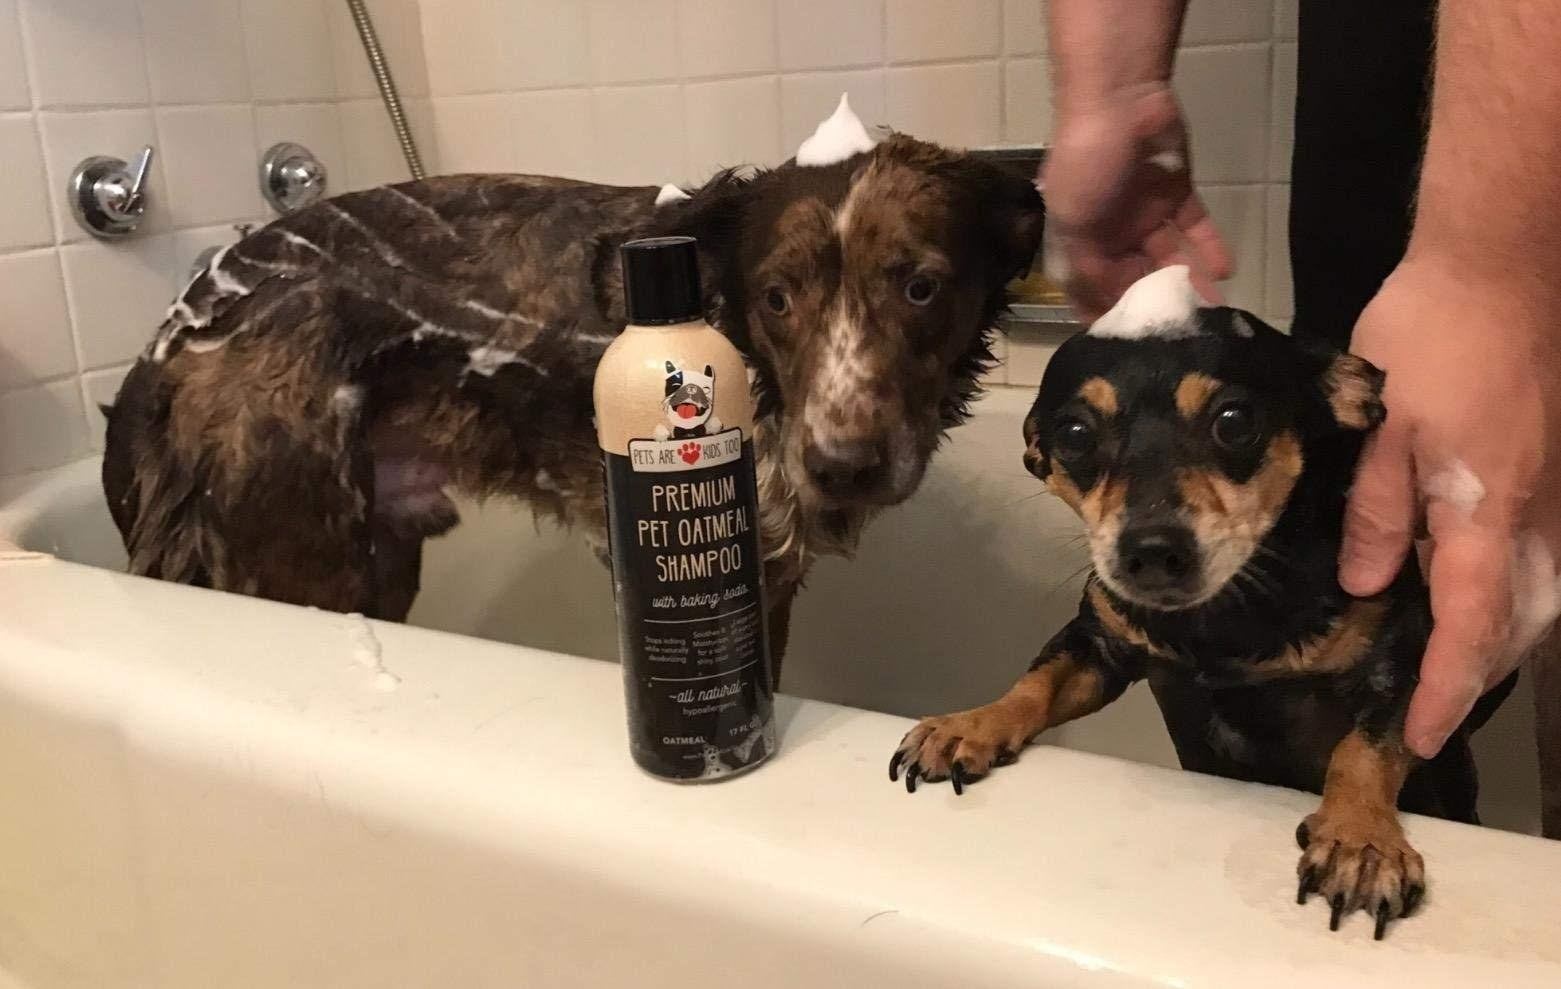 Reviewer's photo of their dogs in the bath using the shampoo and conditioner